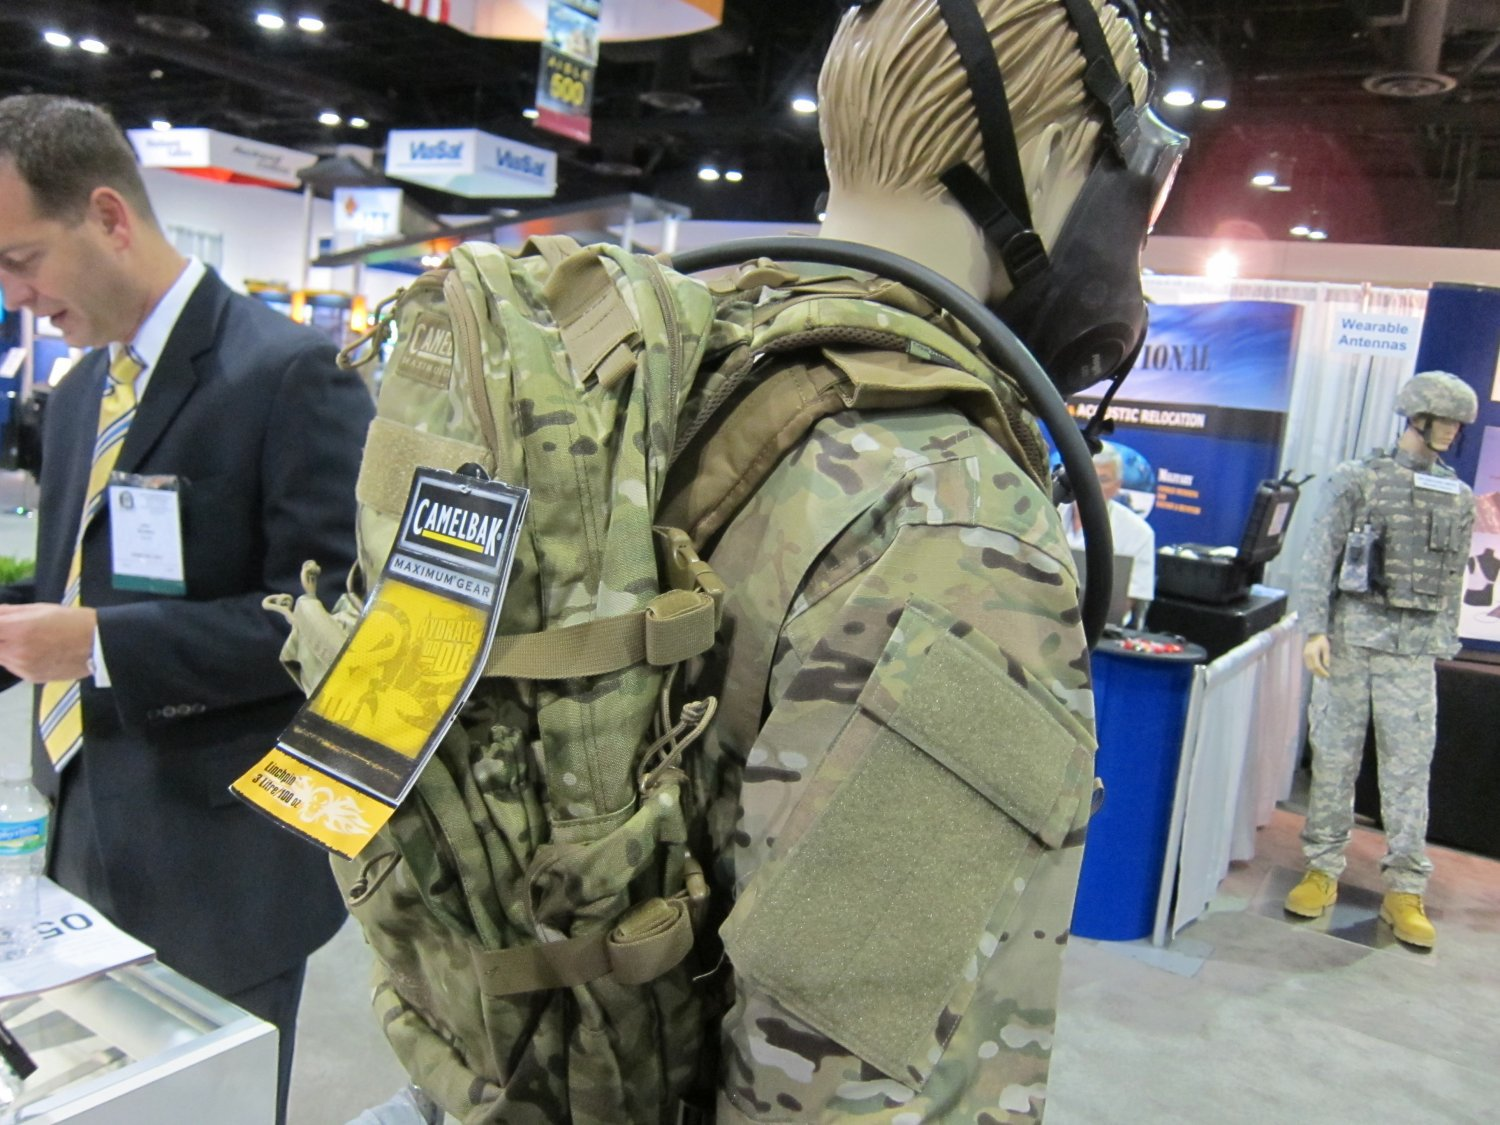 <!--:en-->Camelbak Ambush AB 500, Thermobak AB, and Linchpin Tactical Hydration Packs/Reservoirs with Direct Armor Attachment System (D.A.A.S.): Strap your tactical hydration directly to your tactical armor plate carrier/tactical vest system! <!--:-->